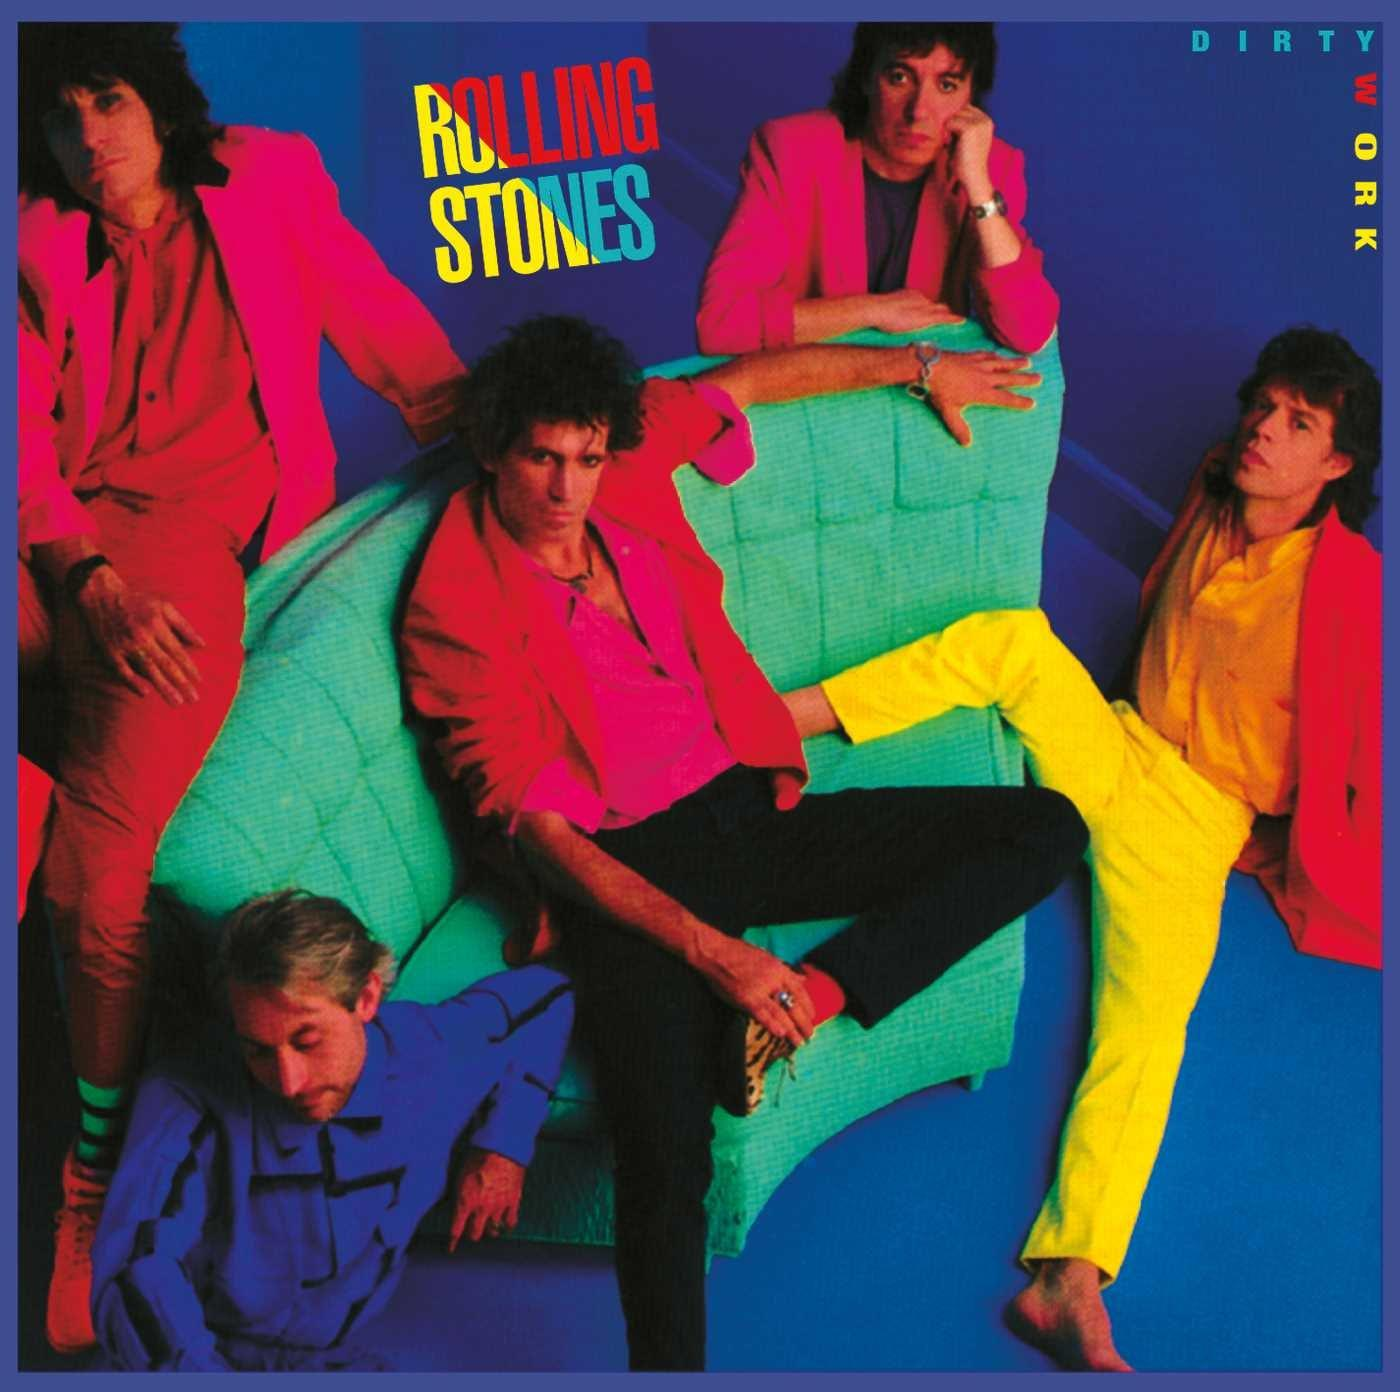 The Rolling Stones - Dirty Work [LP]